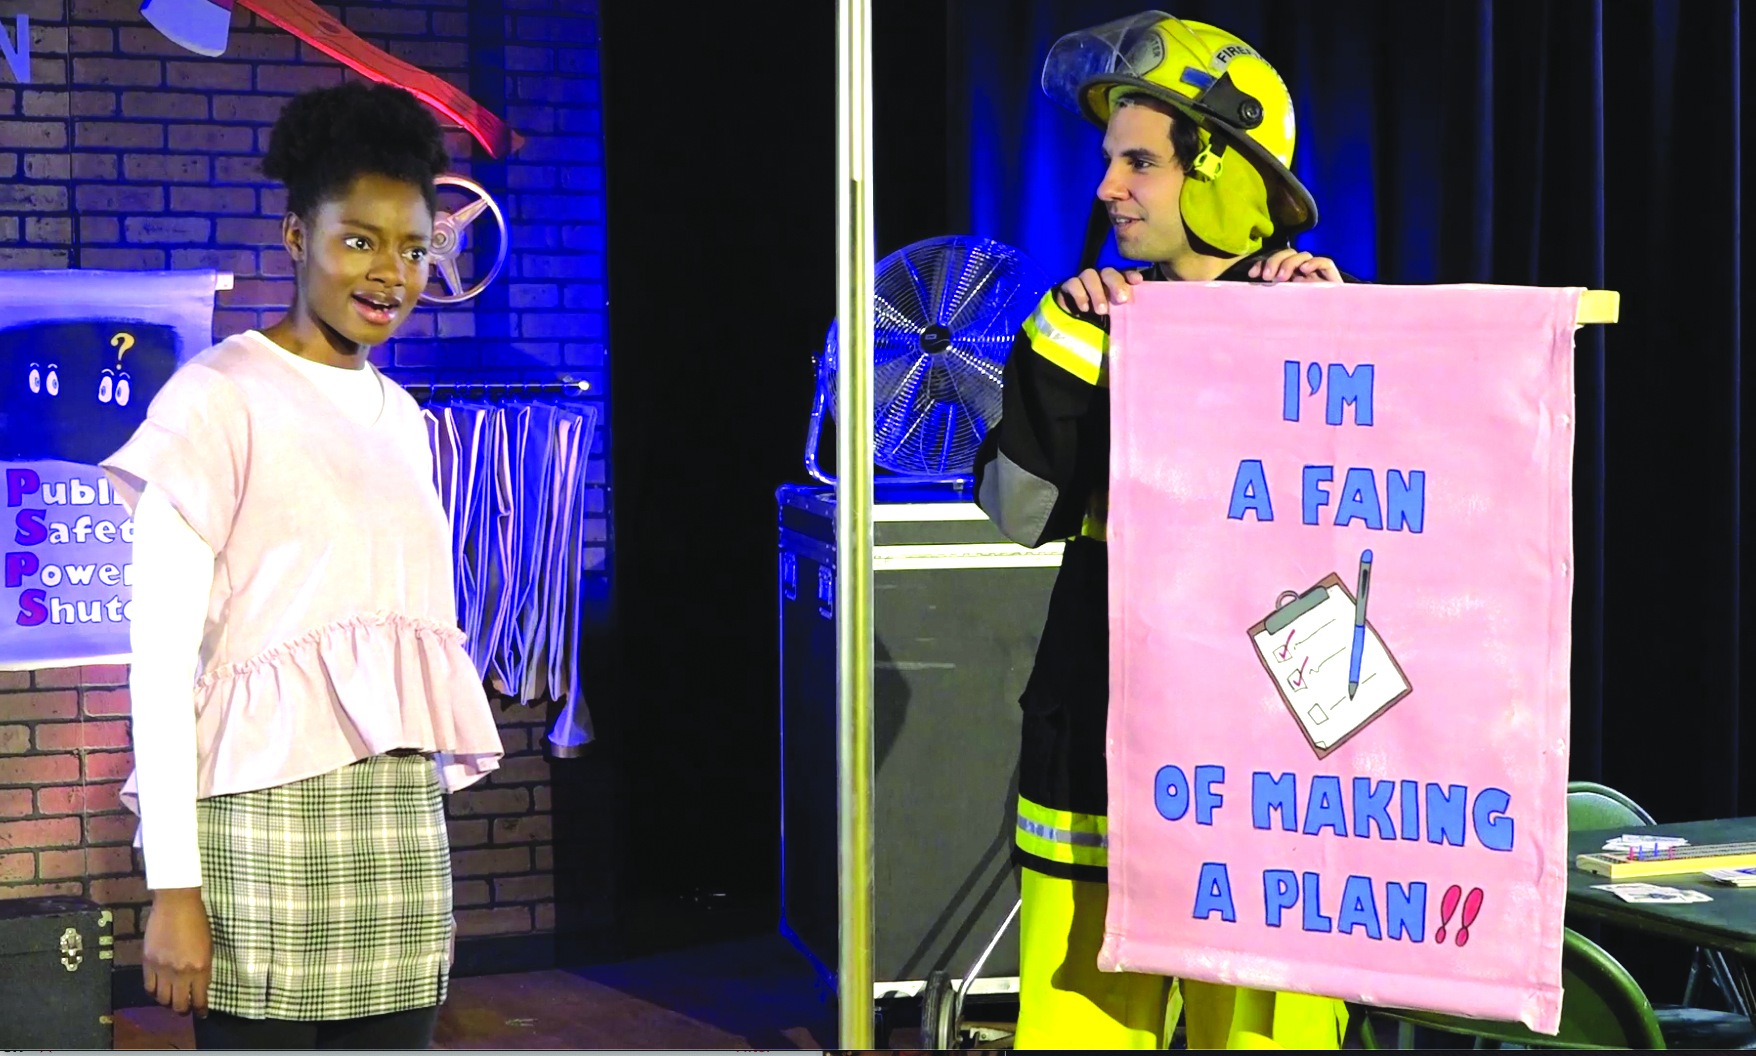 Through her adventures, Penelope Planner, the heroine of the play, teaches students the importance of making a plan for emergencies.